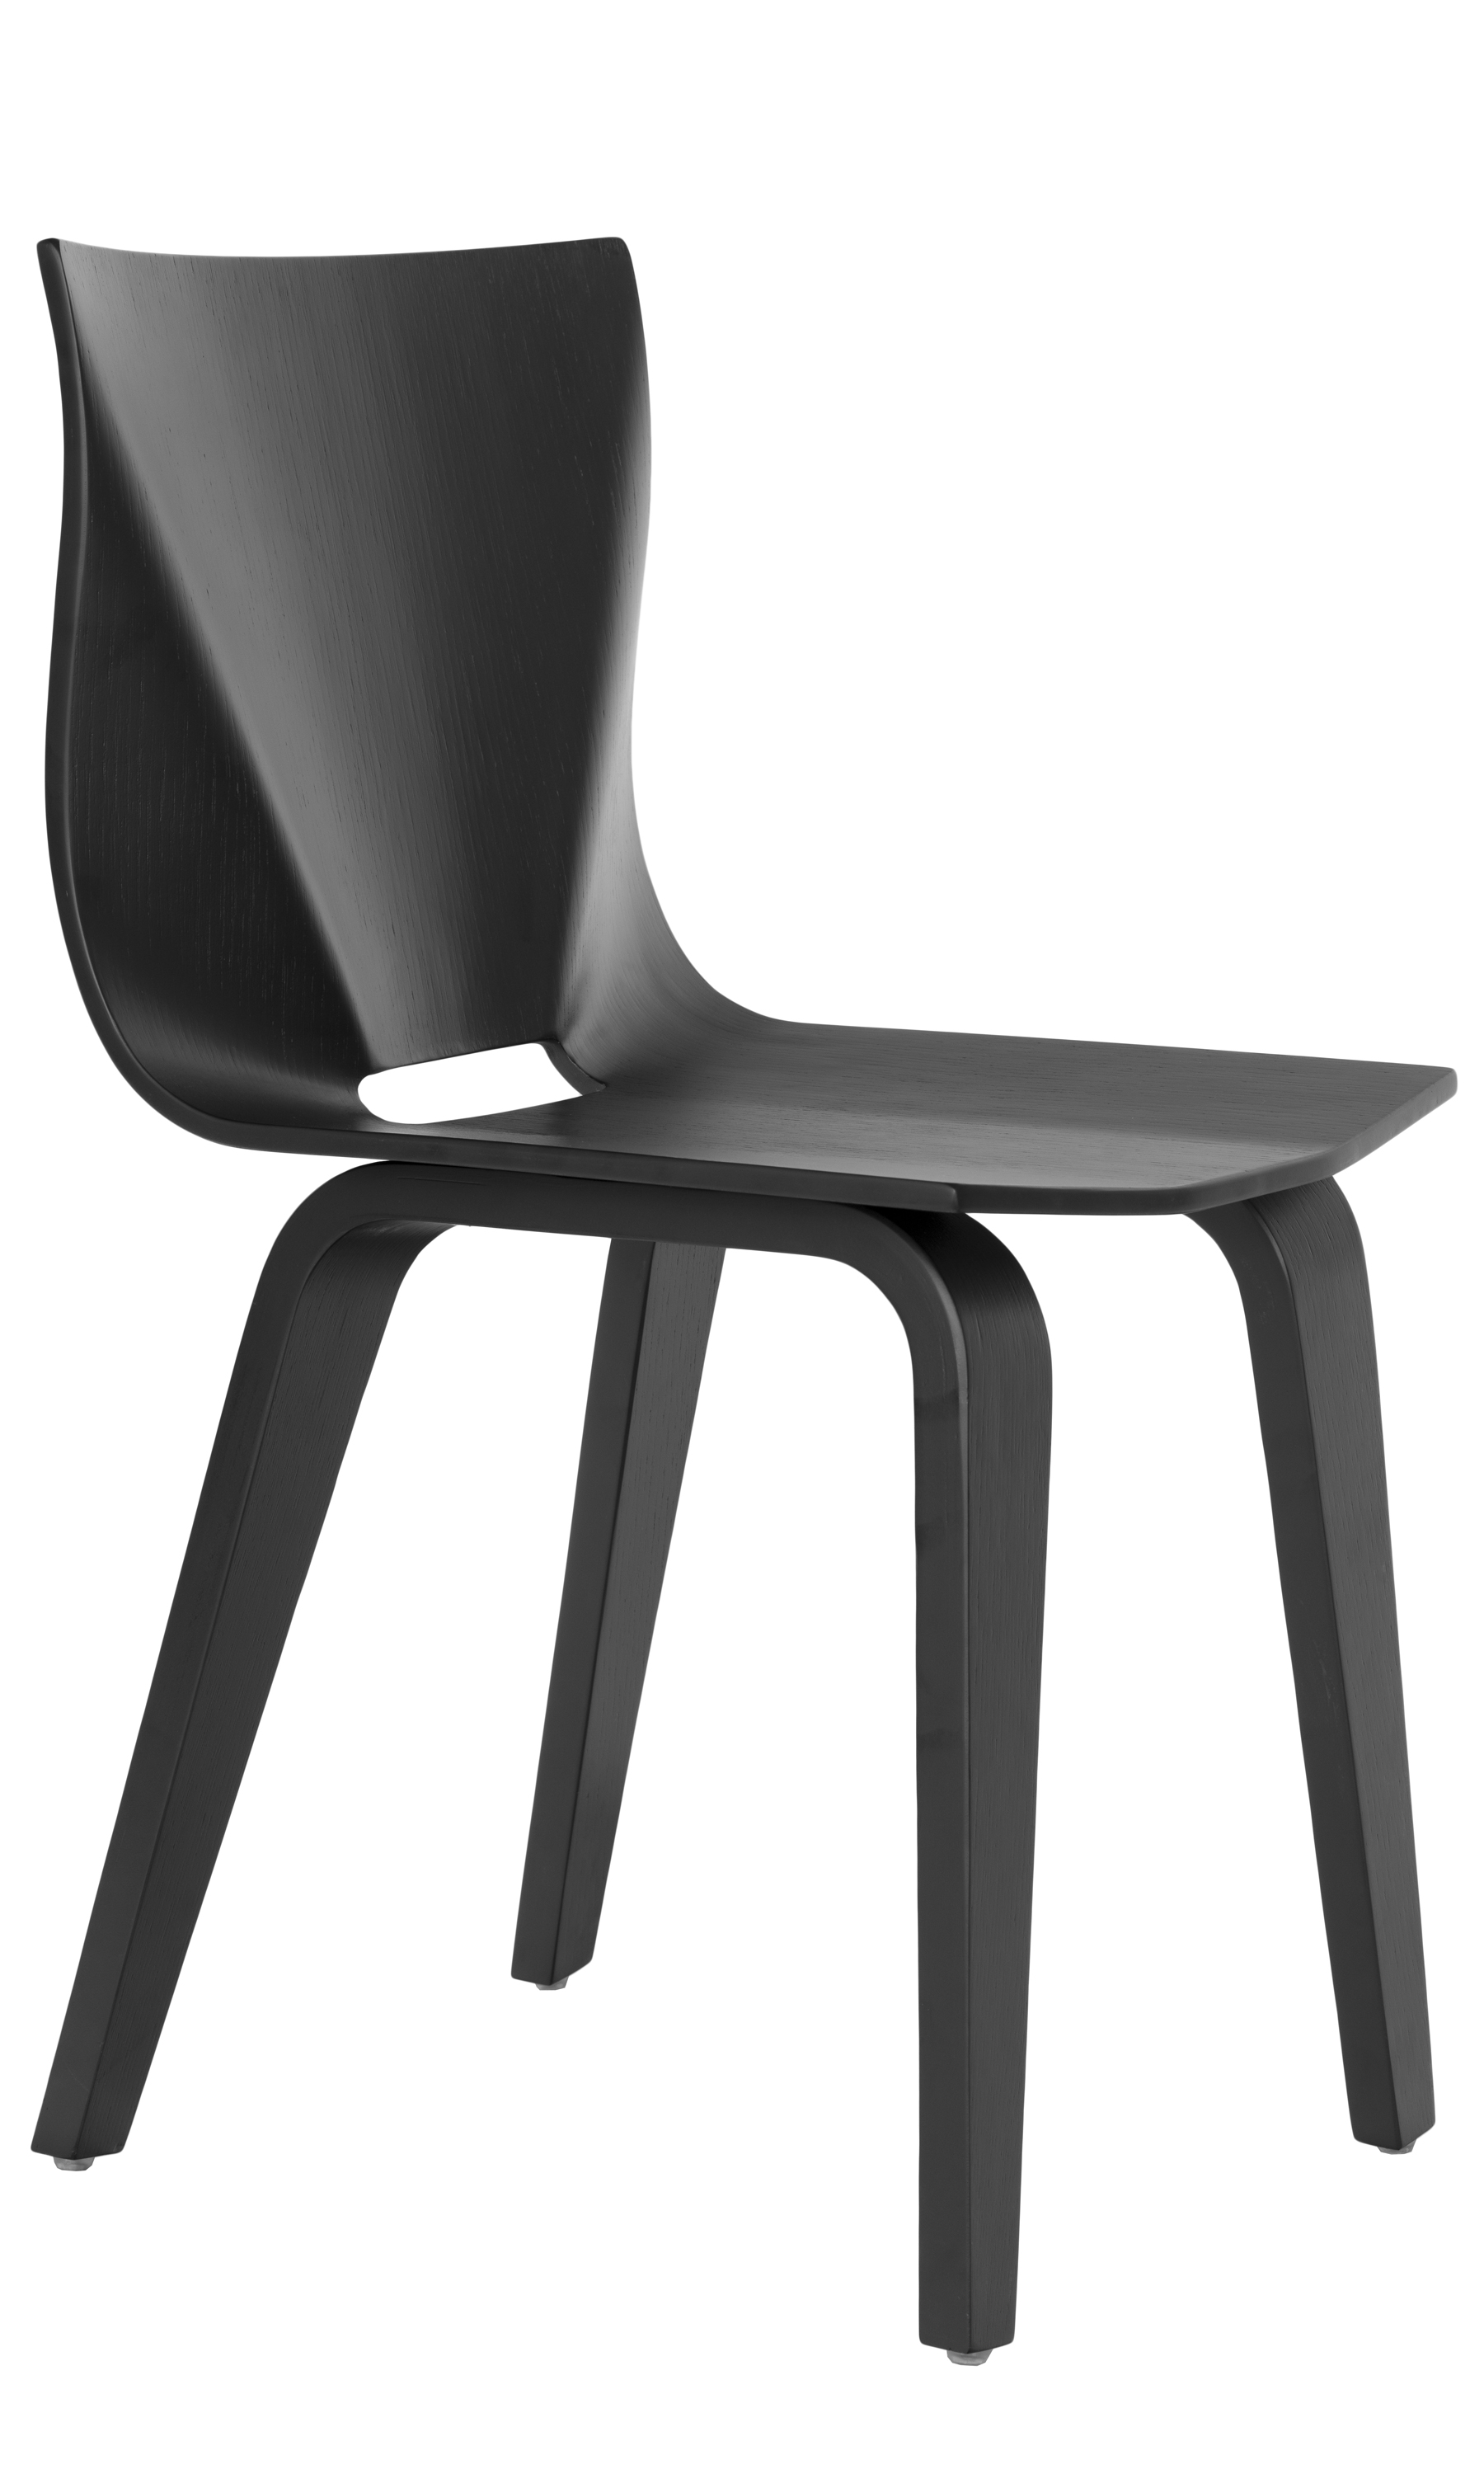 V Chair in black